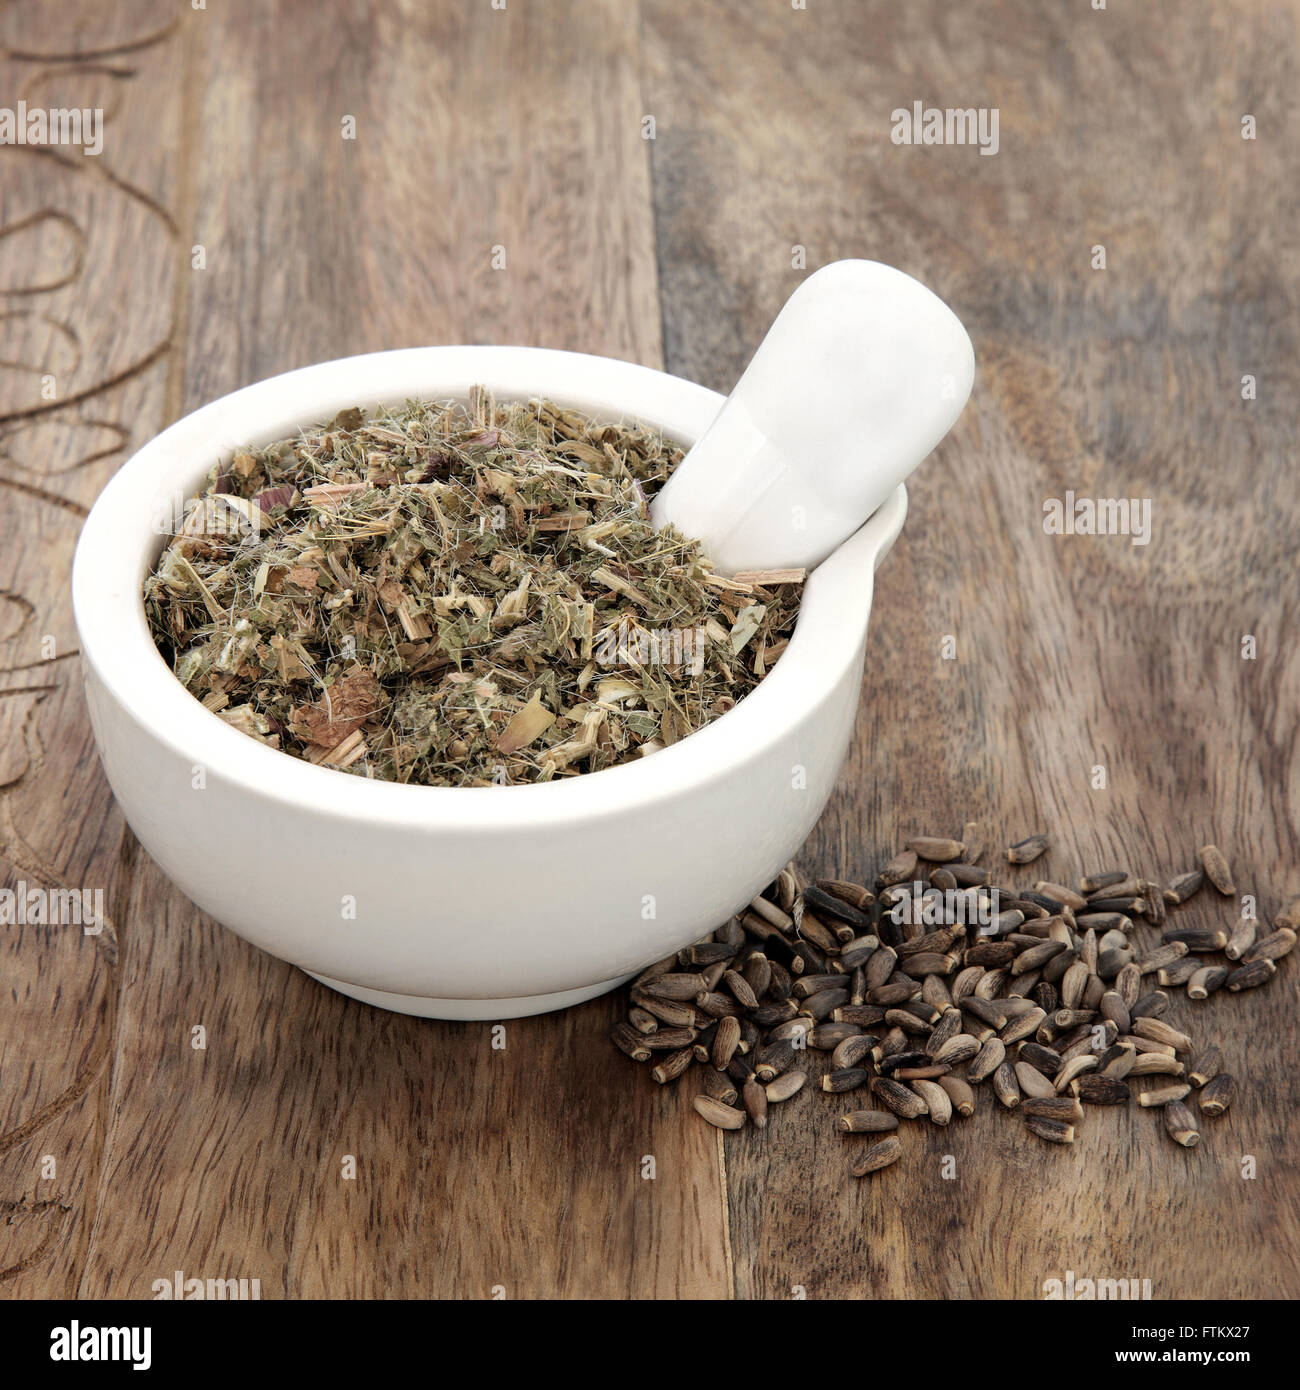 Blessed and milk thistle herb seeds used in natural alternative herbal medicine with mortar and pestle over old - Stock Image